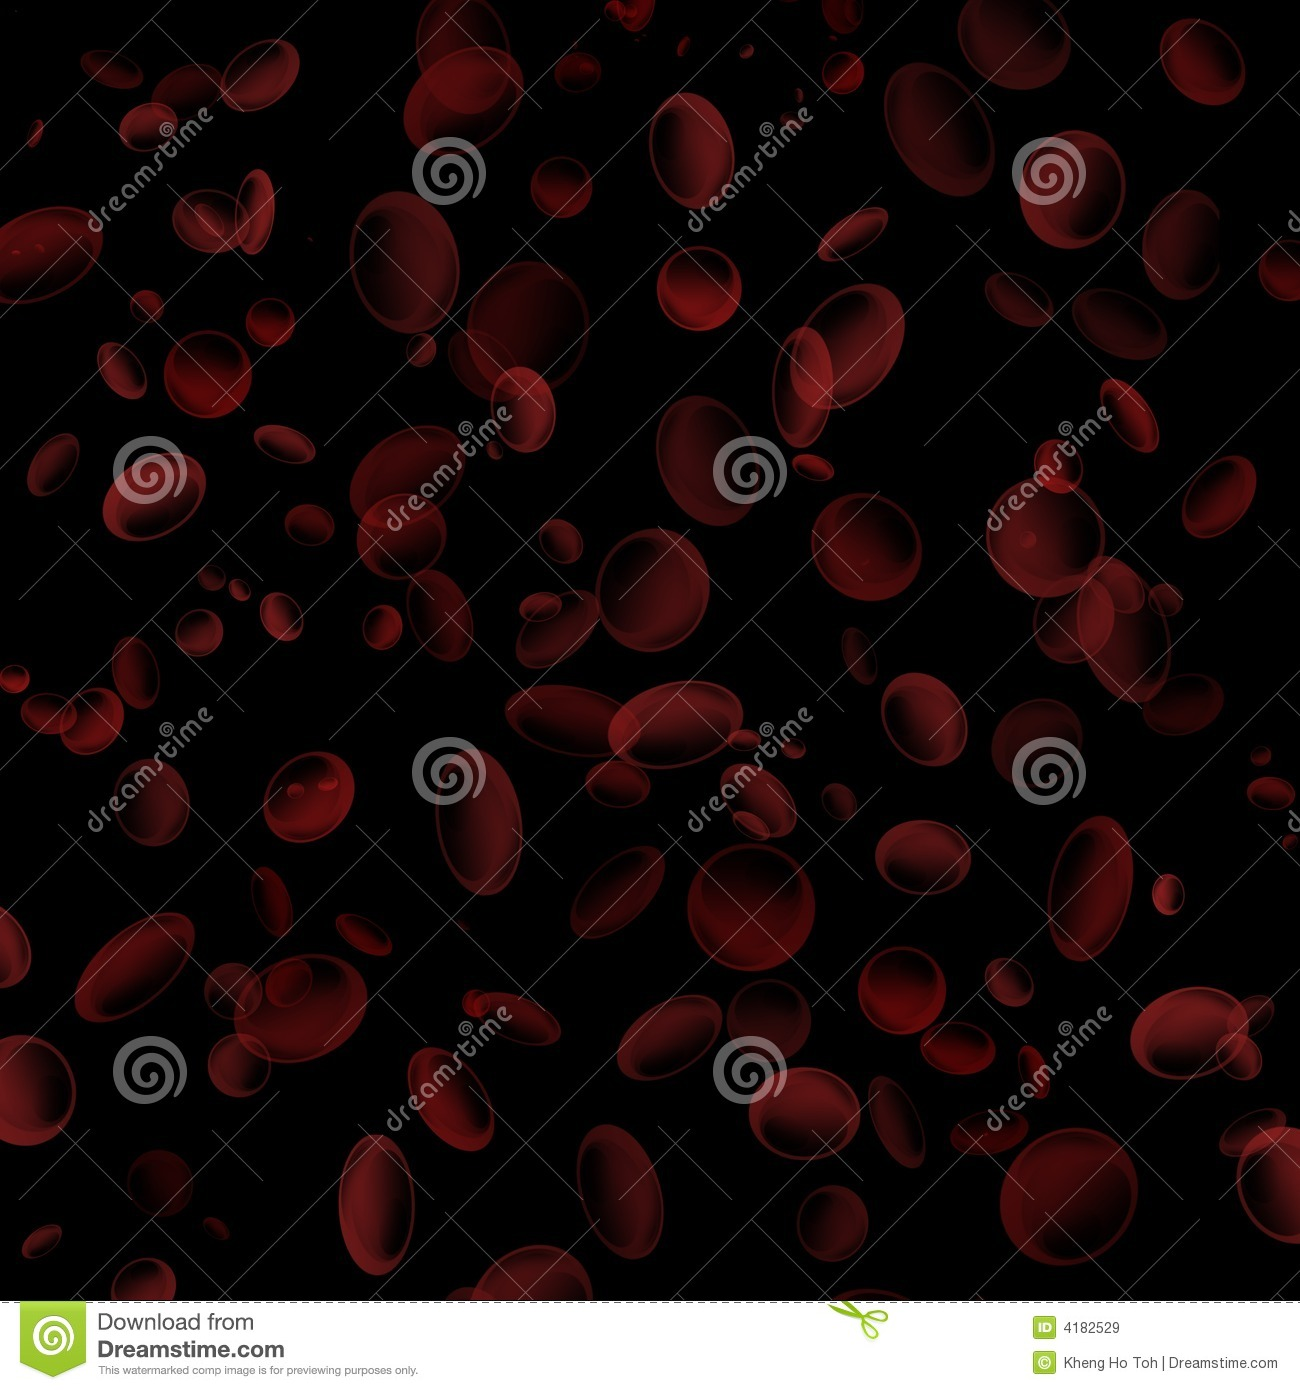 Red Blood Cells Floating In A Black Background Royalty Free Stock ...